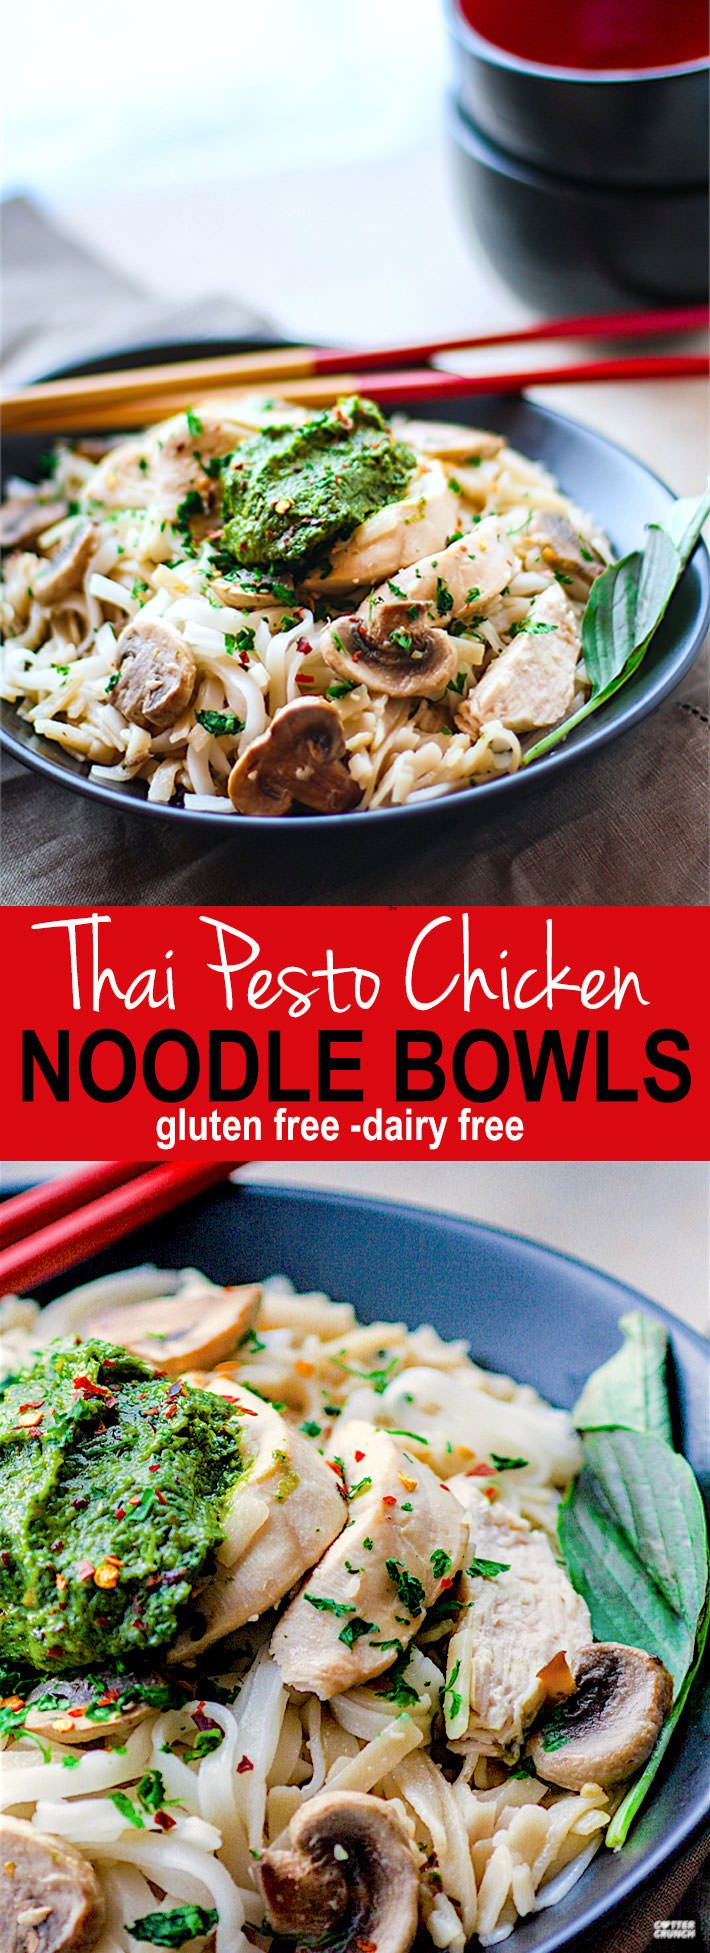 Spicy Thai Pesto Chicken Noodle Bowls! These gluten free noodle bowls are delicious and easy to make! The thai pesto brings a kick of flavor and a dose of Healthy antioxidants! A dairy free dinner that's ready in less than 45 minutes and great for a hungry crew! www.cottercrunch.com